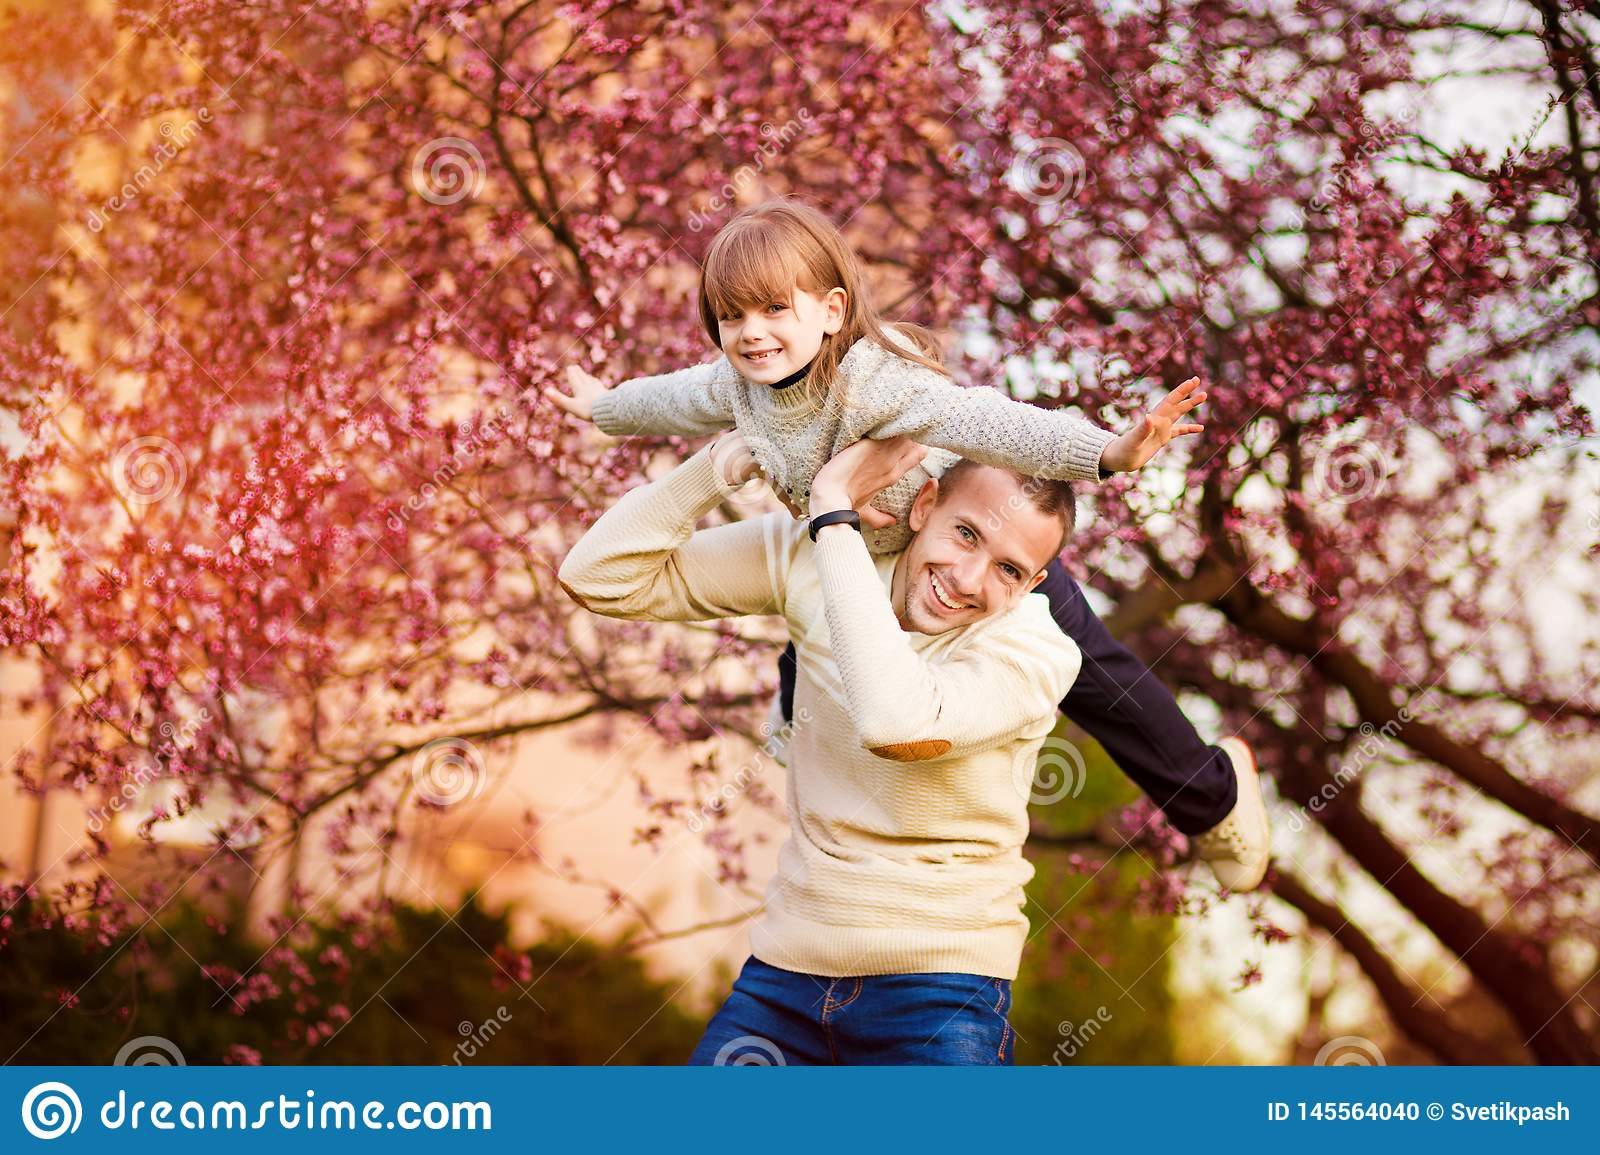 Happy father and child spending time outdoors. Family support